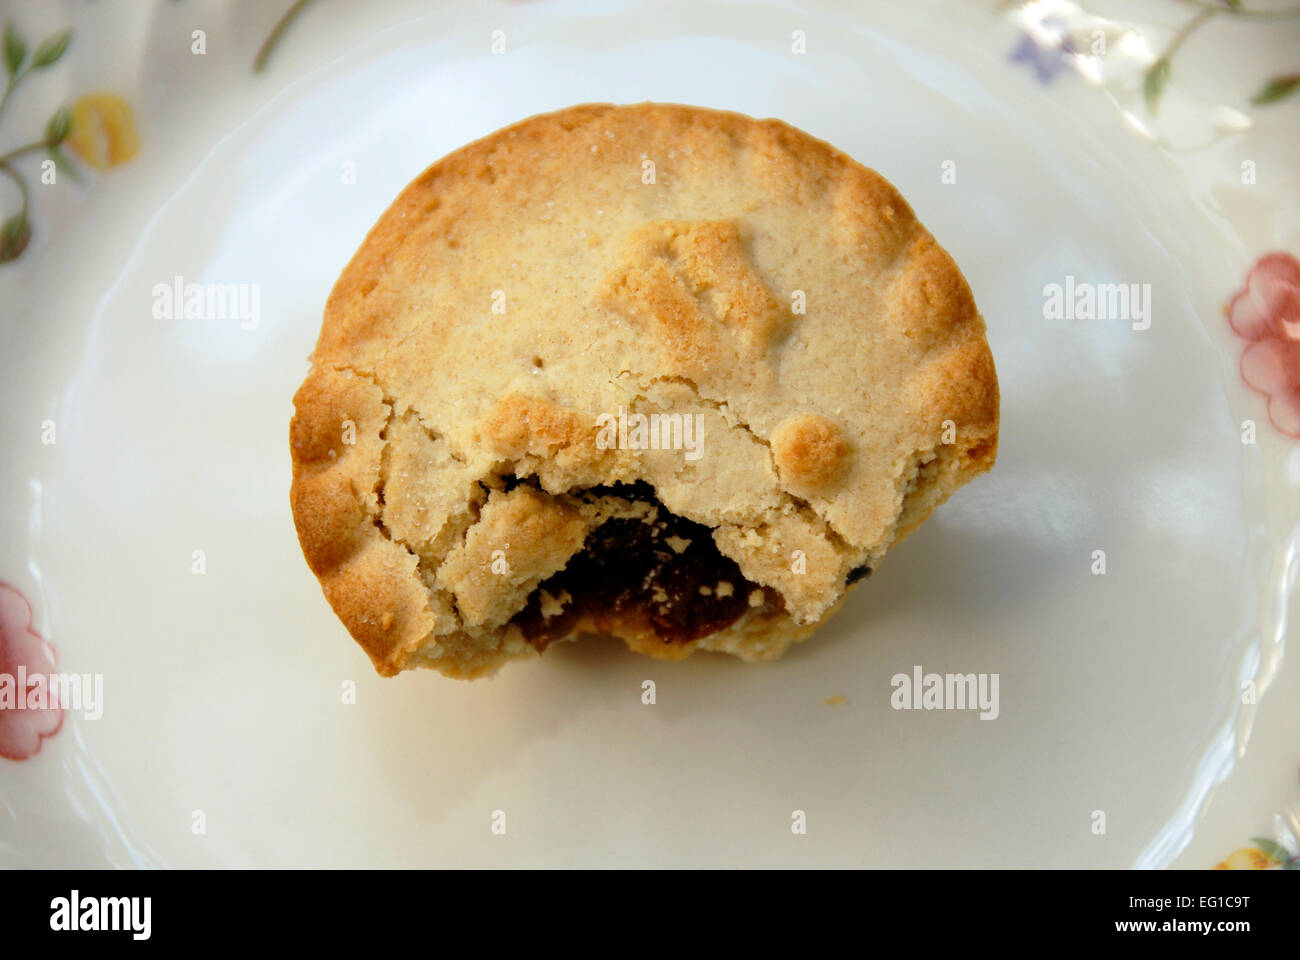 Partly eaten mince pie on plate - Stock Image